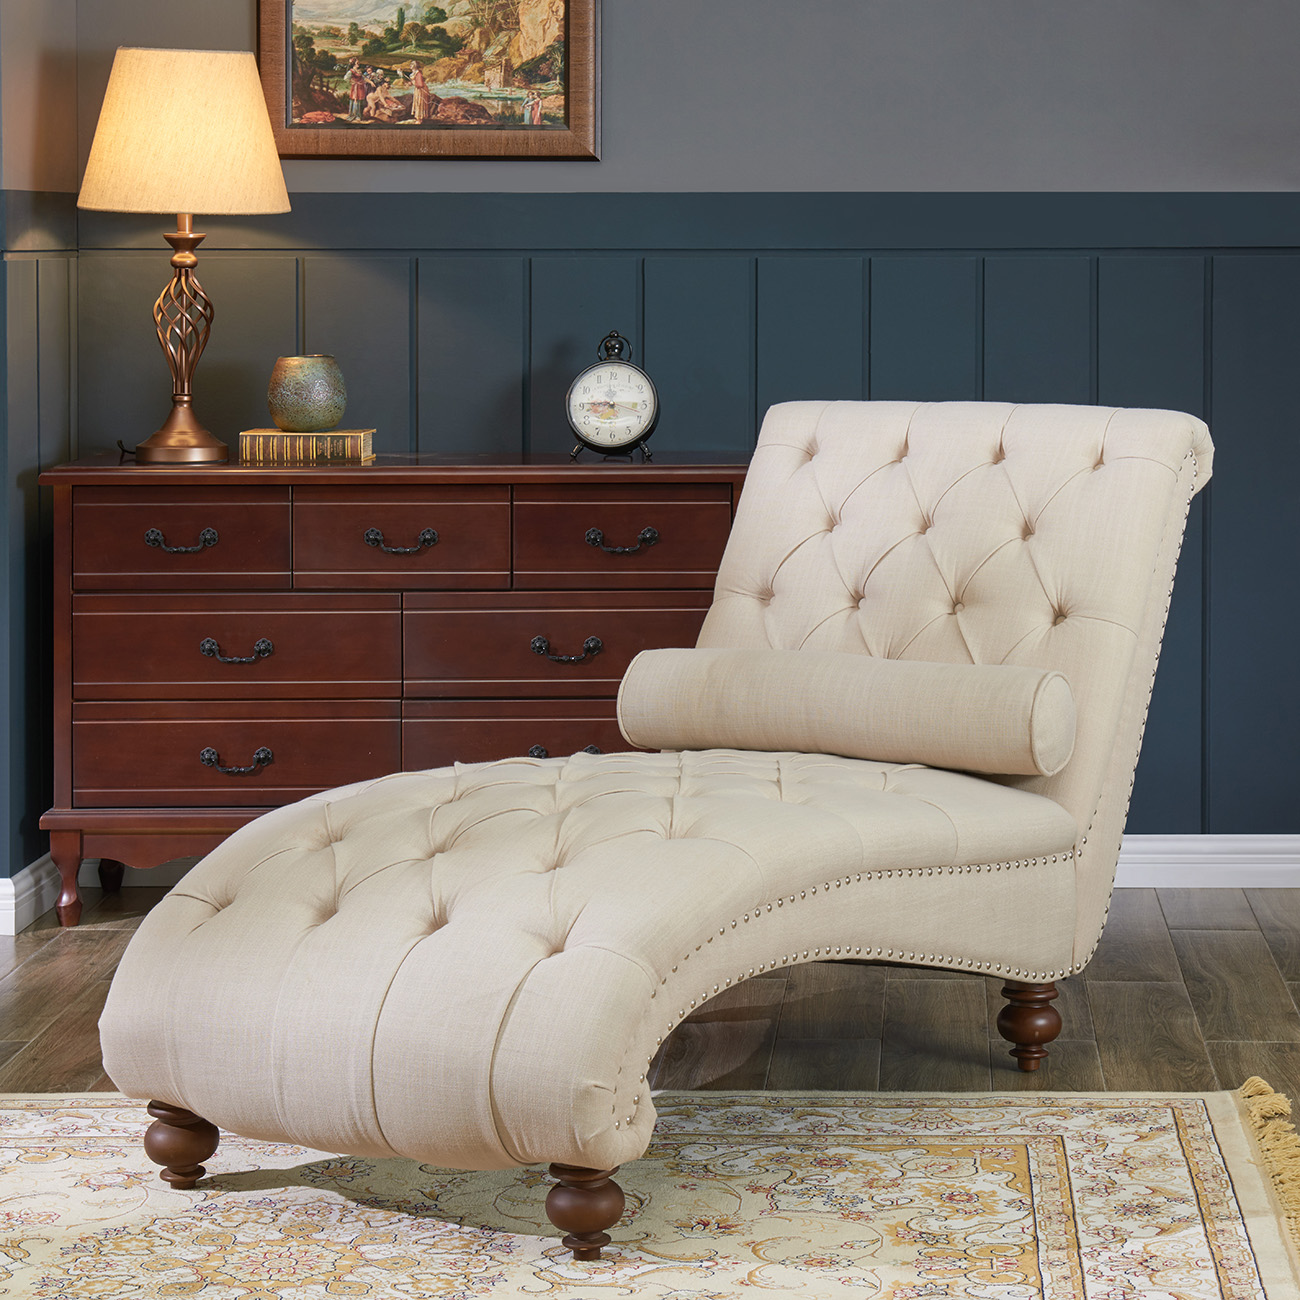 belleze teofila tufted chaise lounge chair leisure sofa couch with bolster pillow nailhead trim and turned legs beige